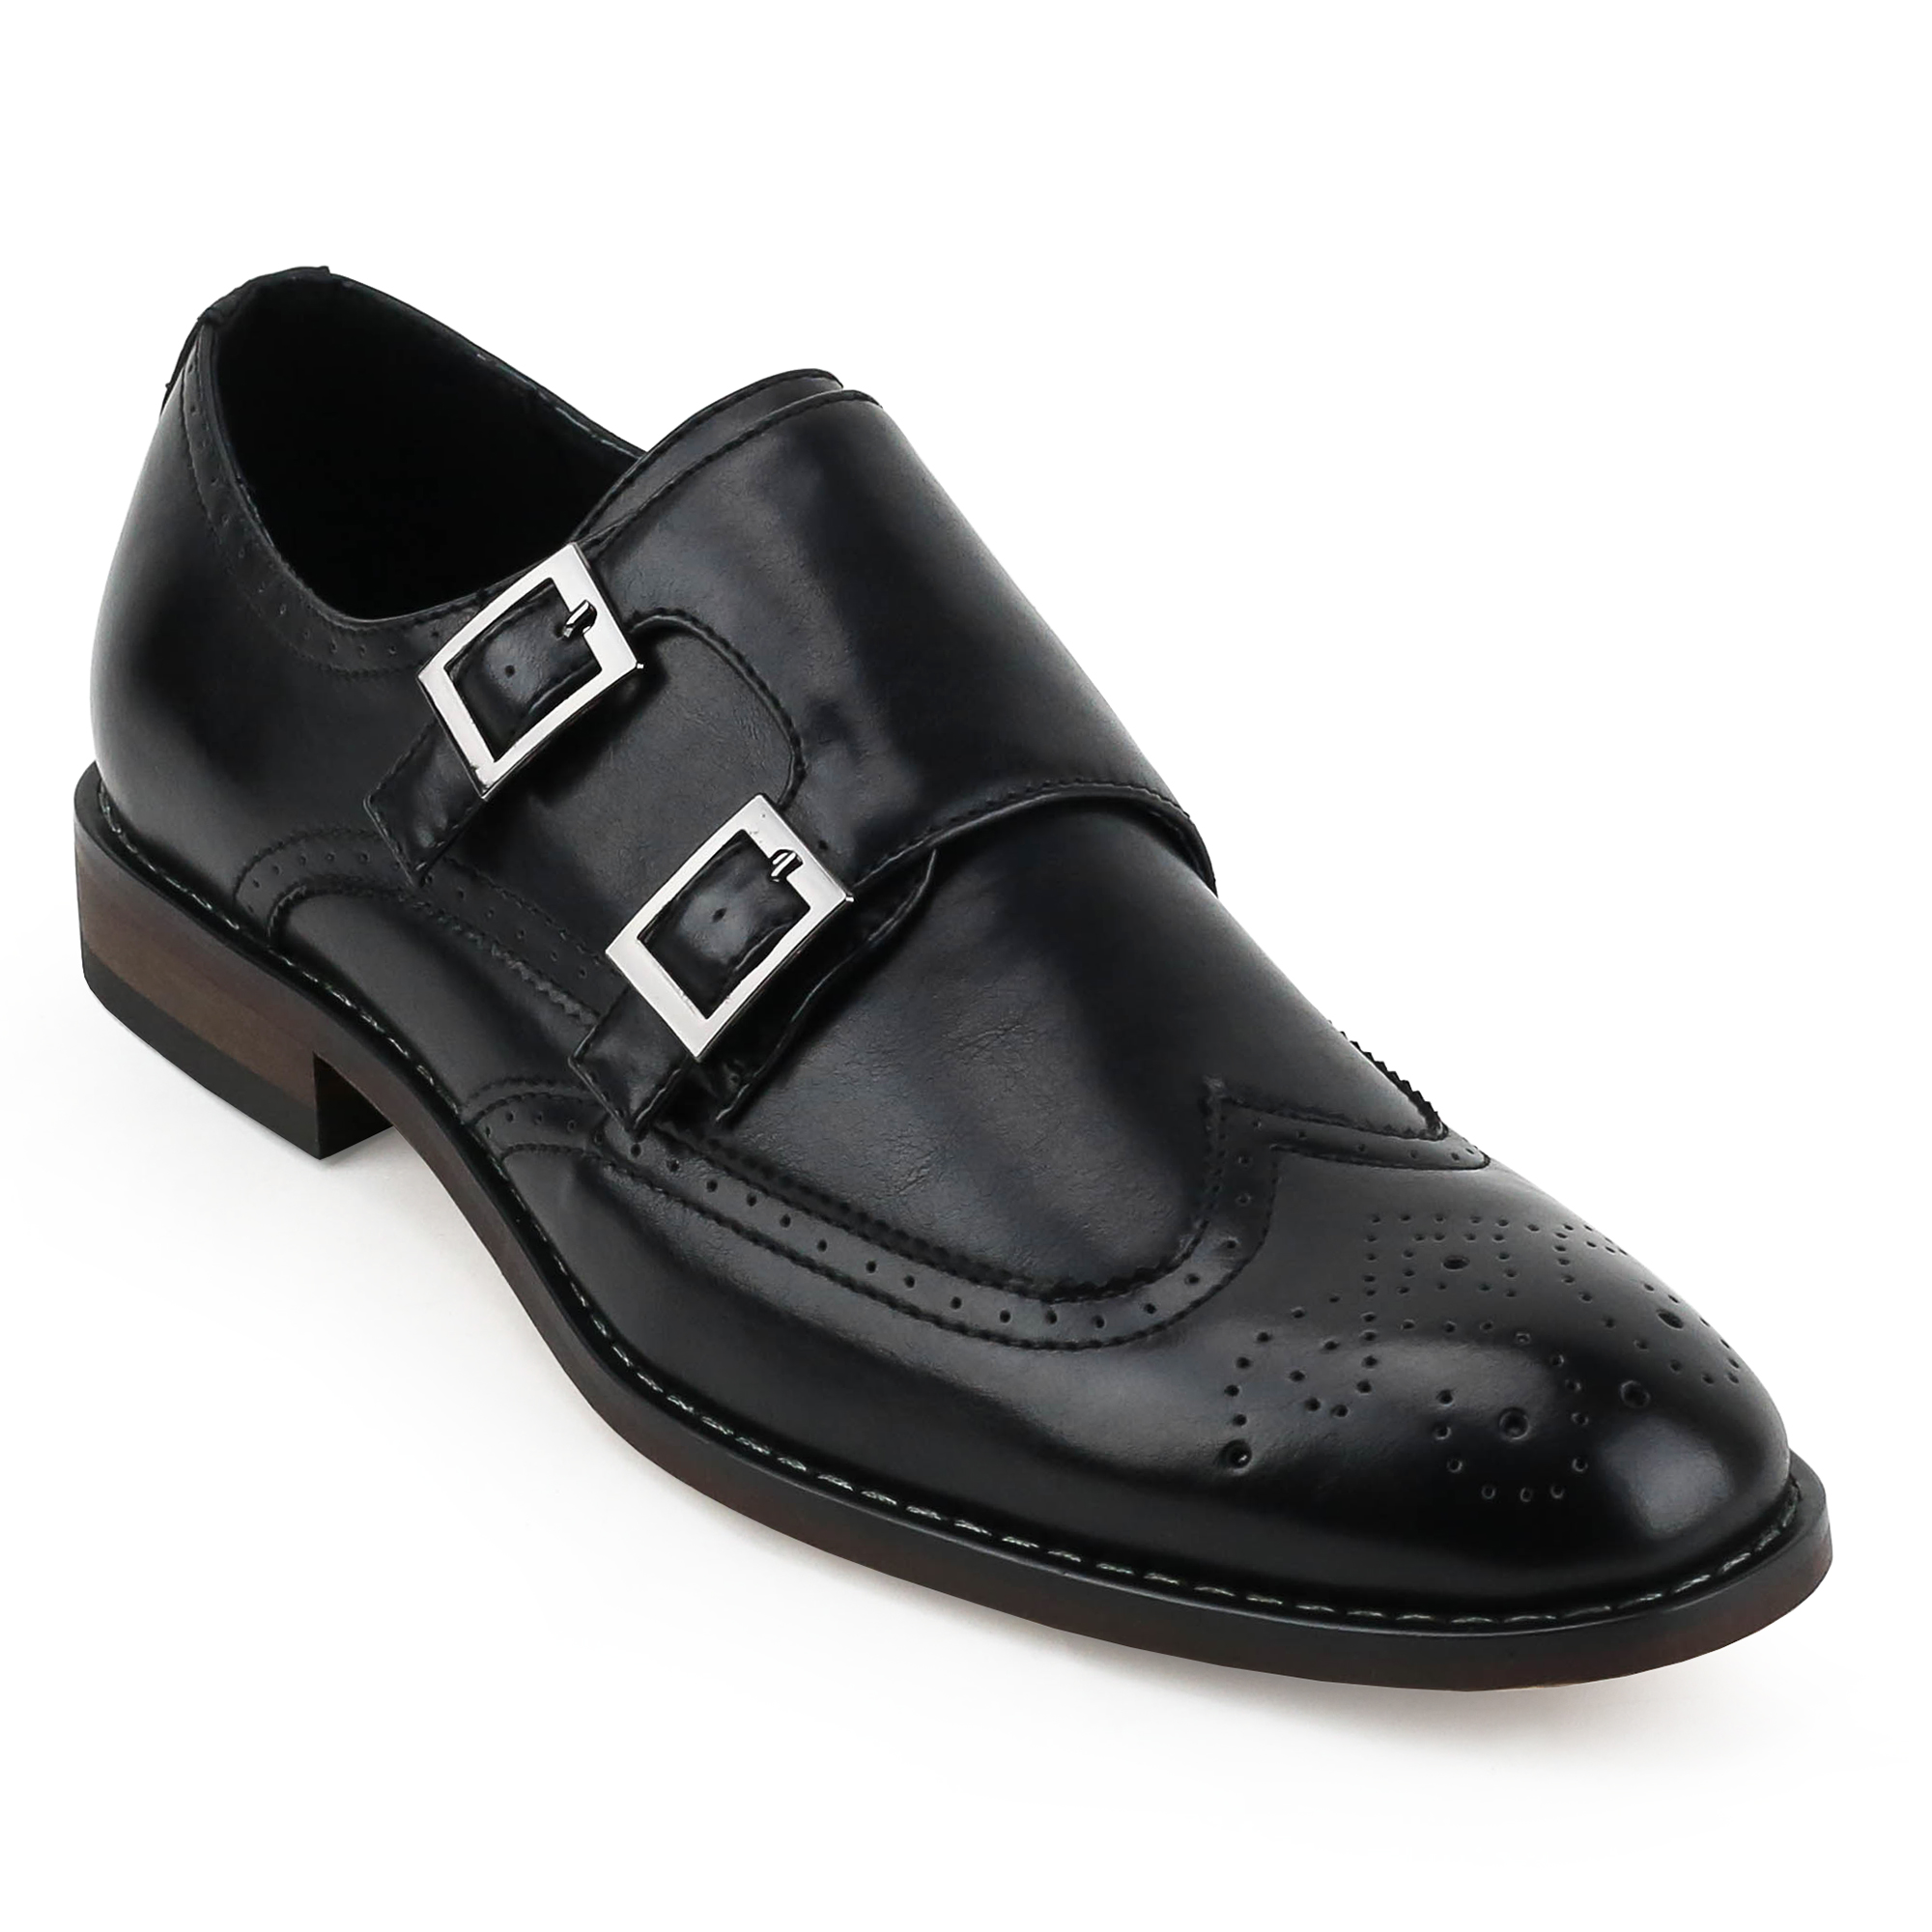 Xray Men's Bronx Monk-strap Dressy by Xray